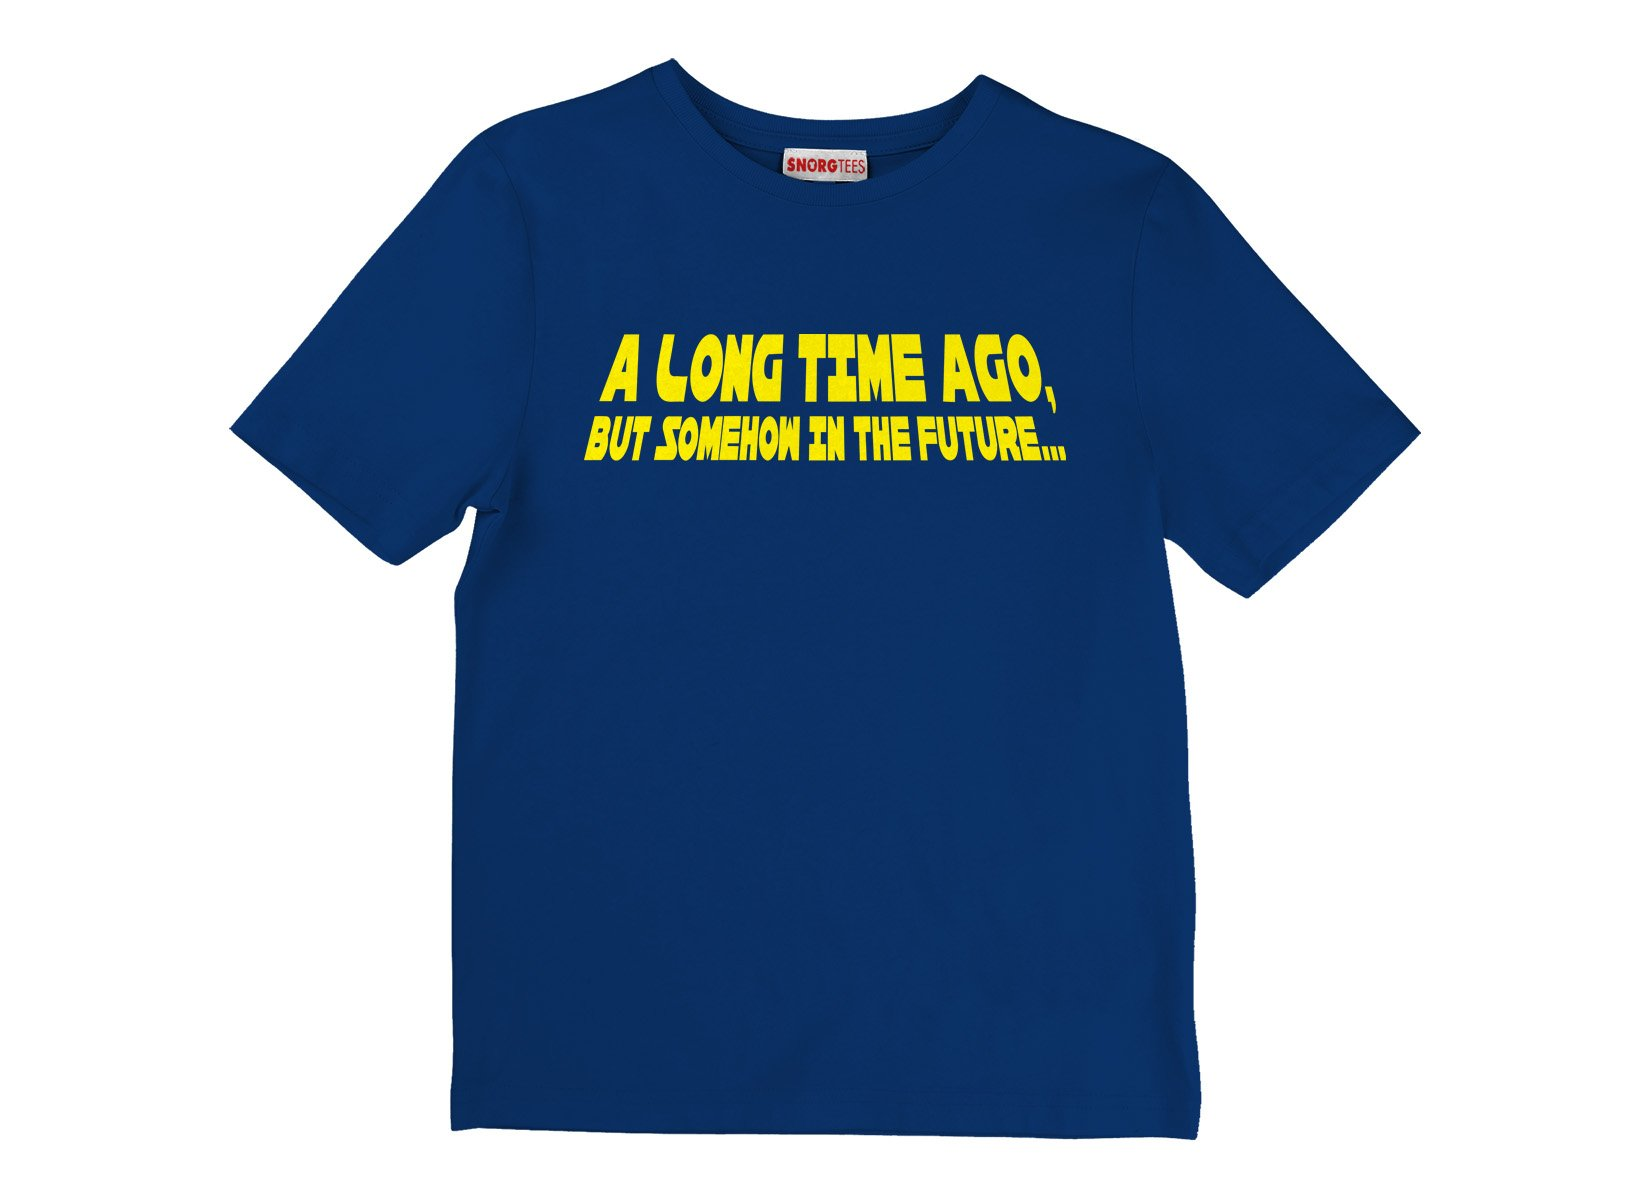 A Long Time Ago, But Somehow In The Future on Kids T-Shirt